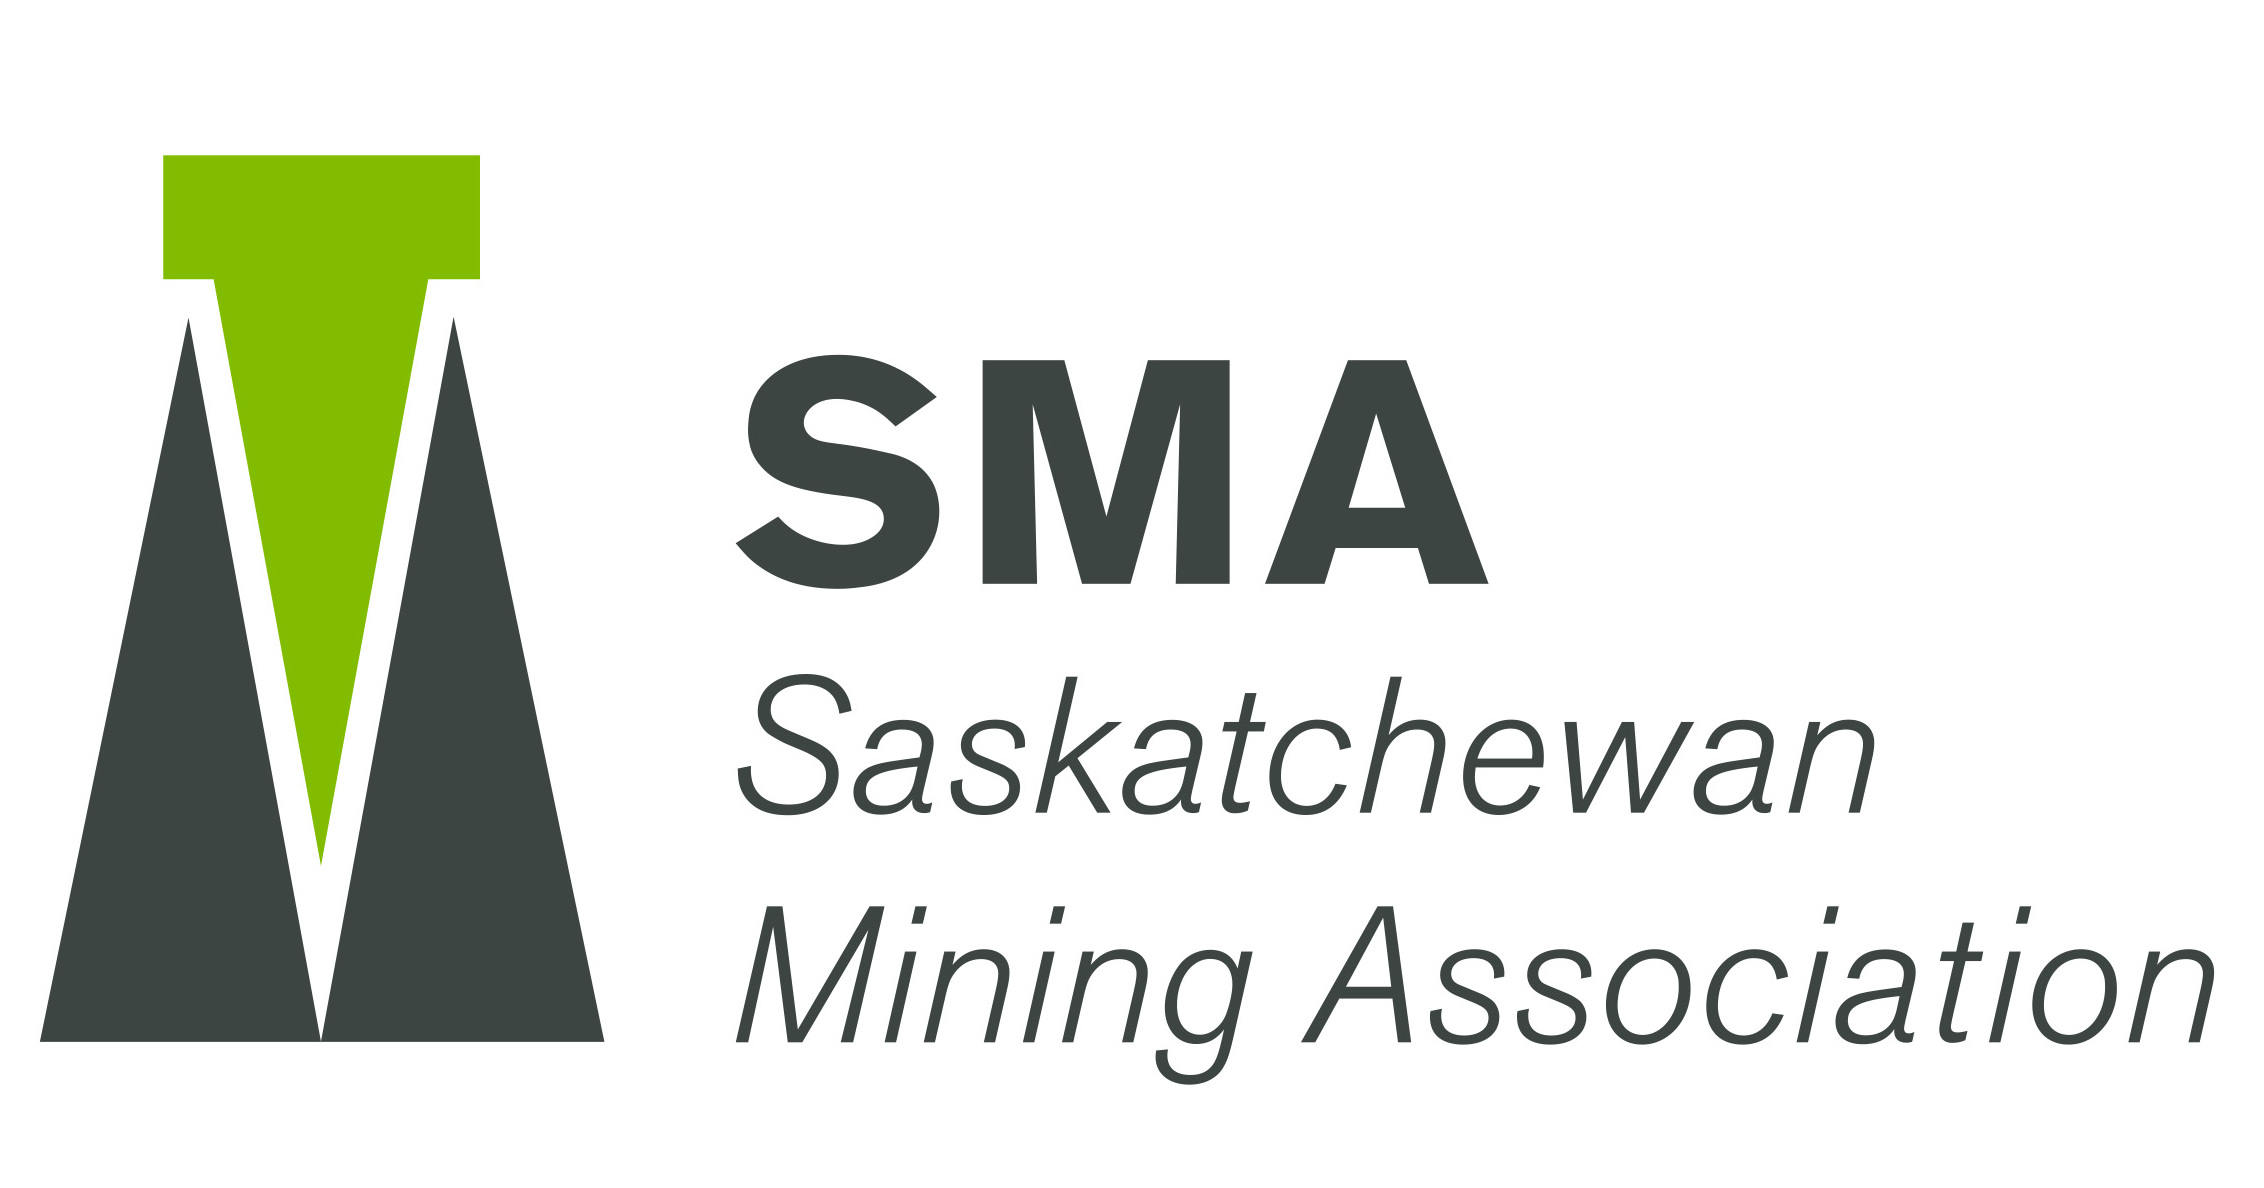 Saskatchewan Mining Association